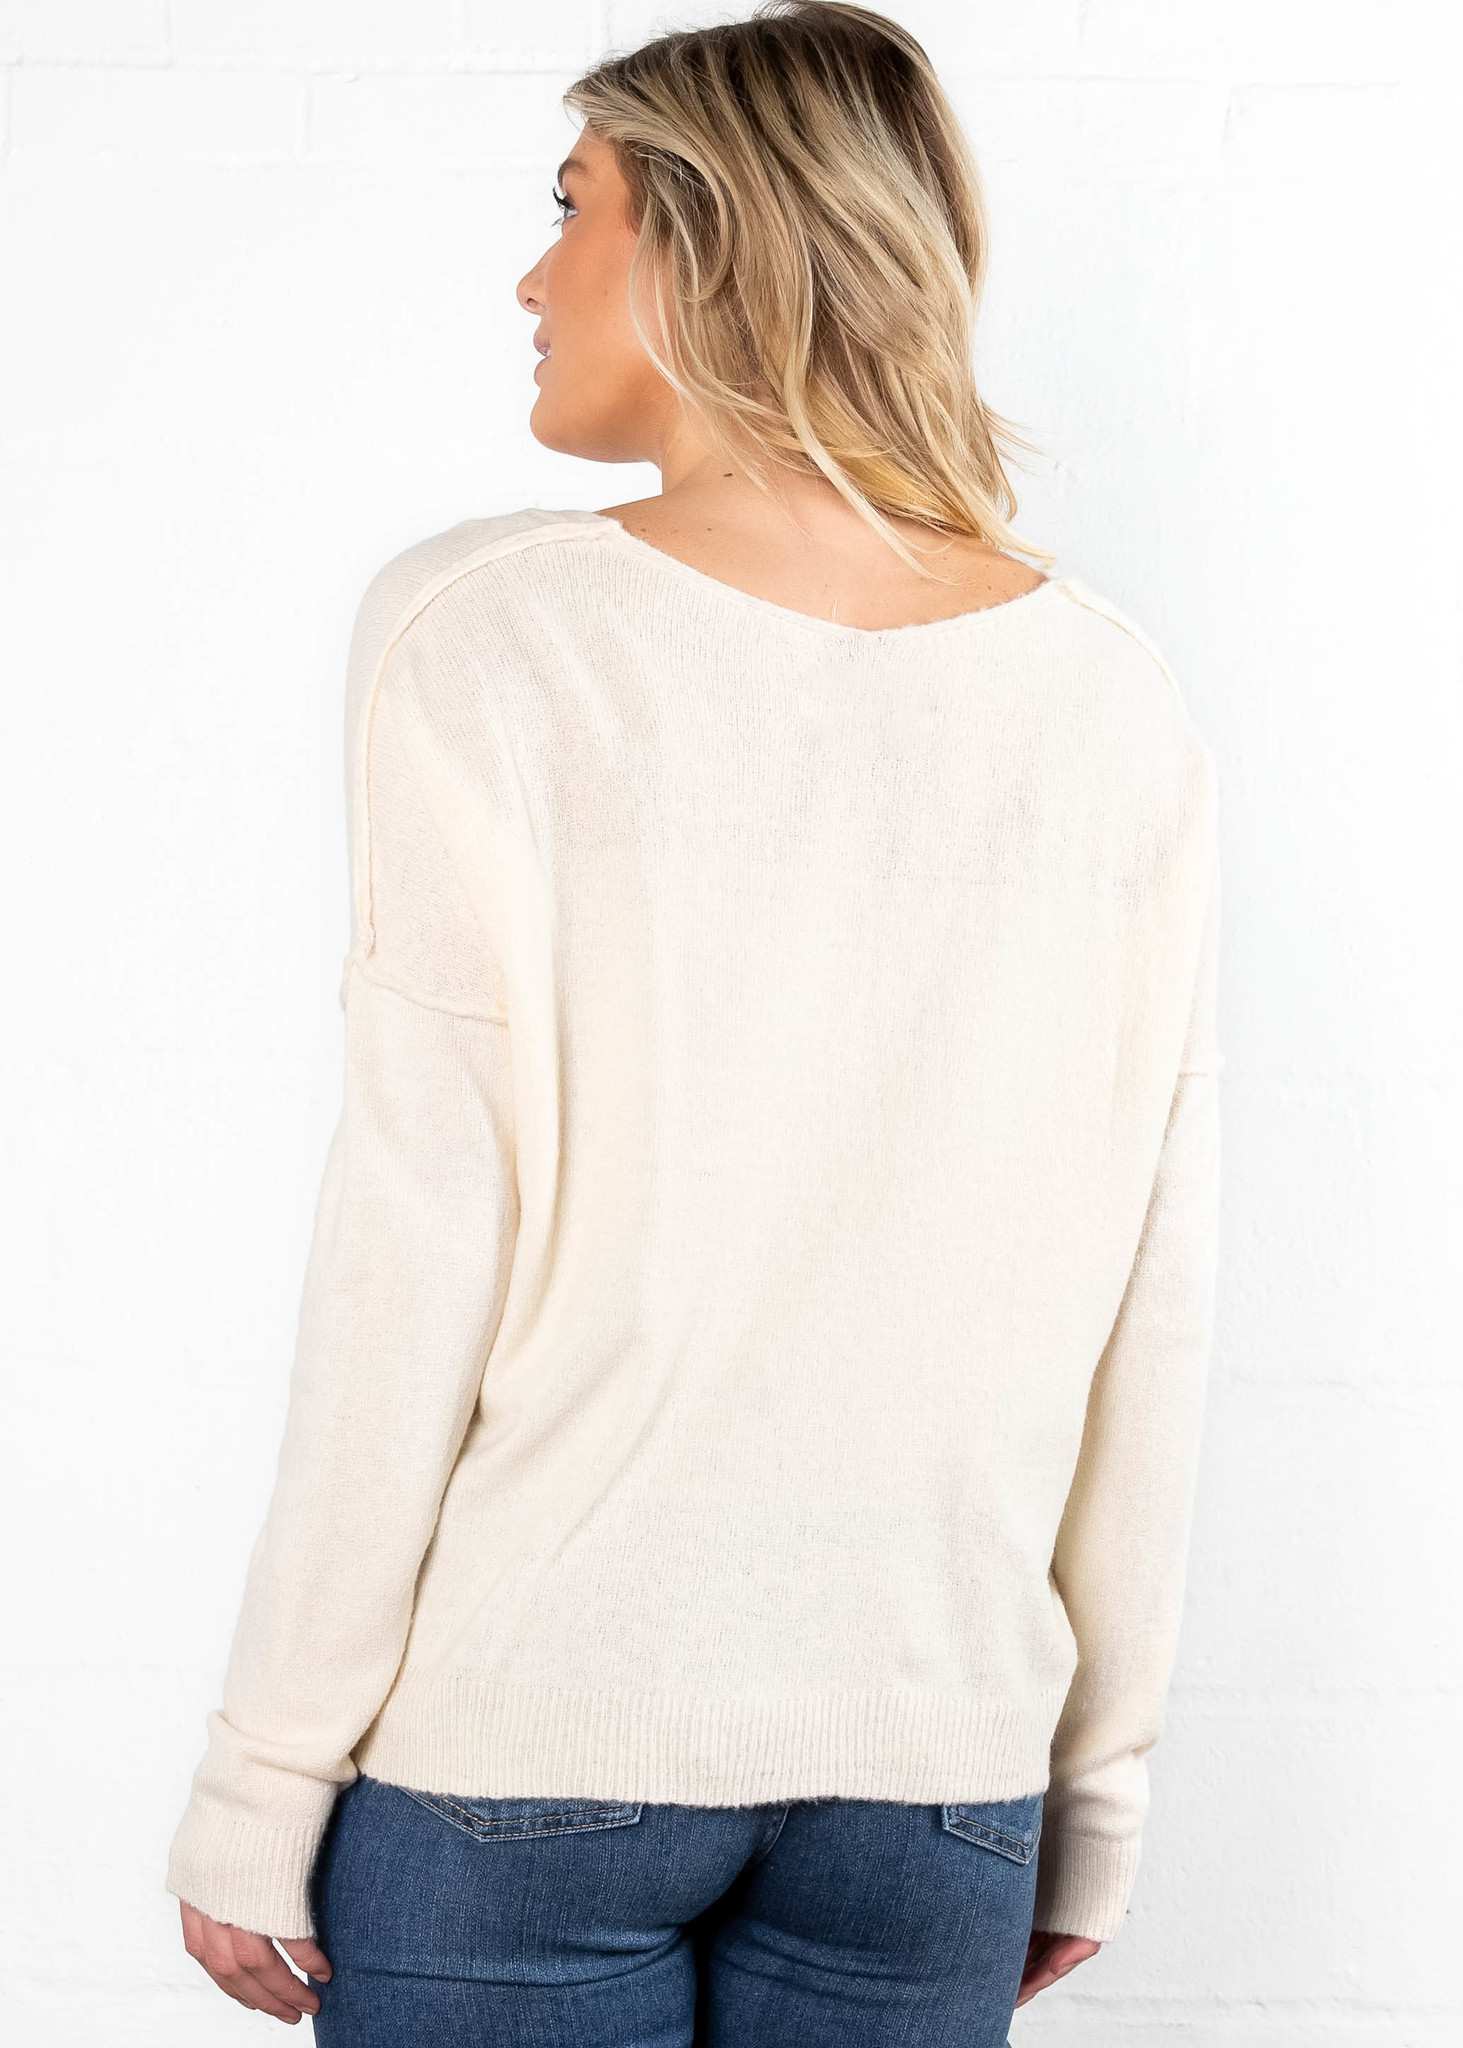 OUR SONG CARDIGAN - CREAM